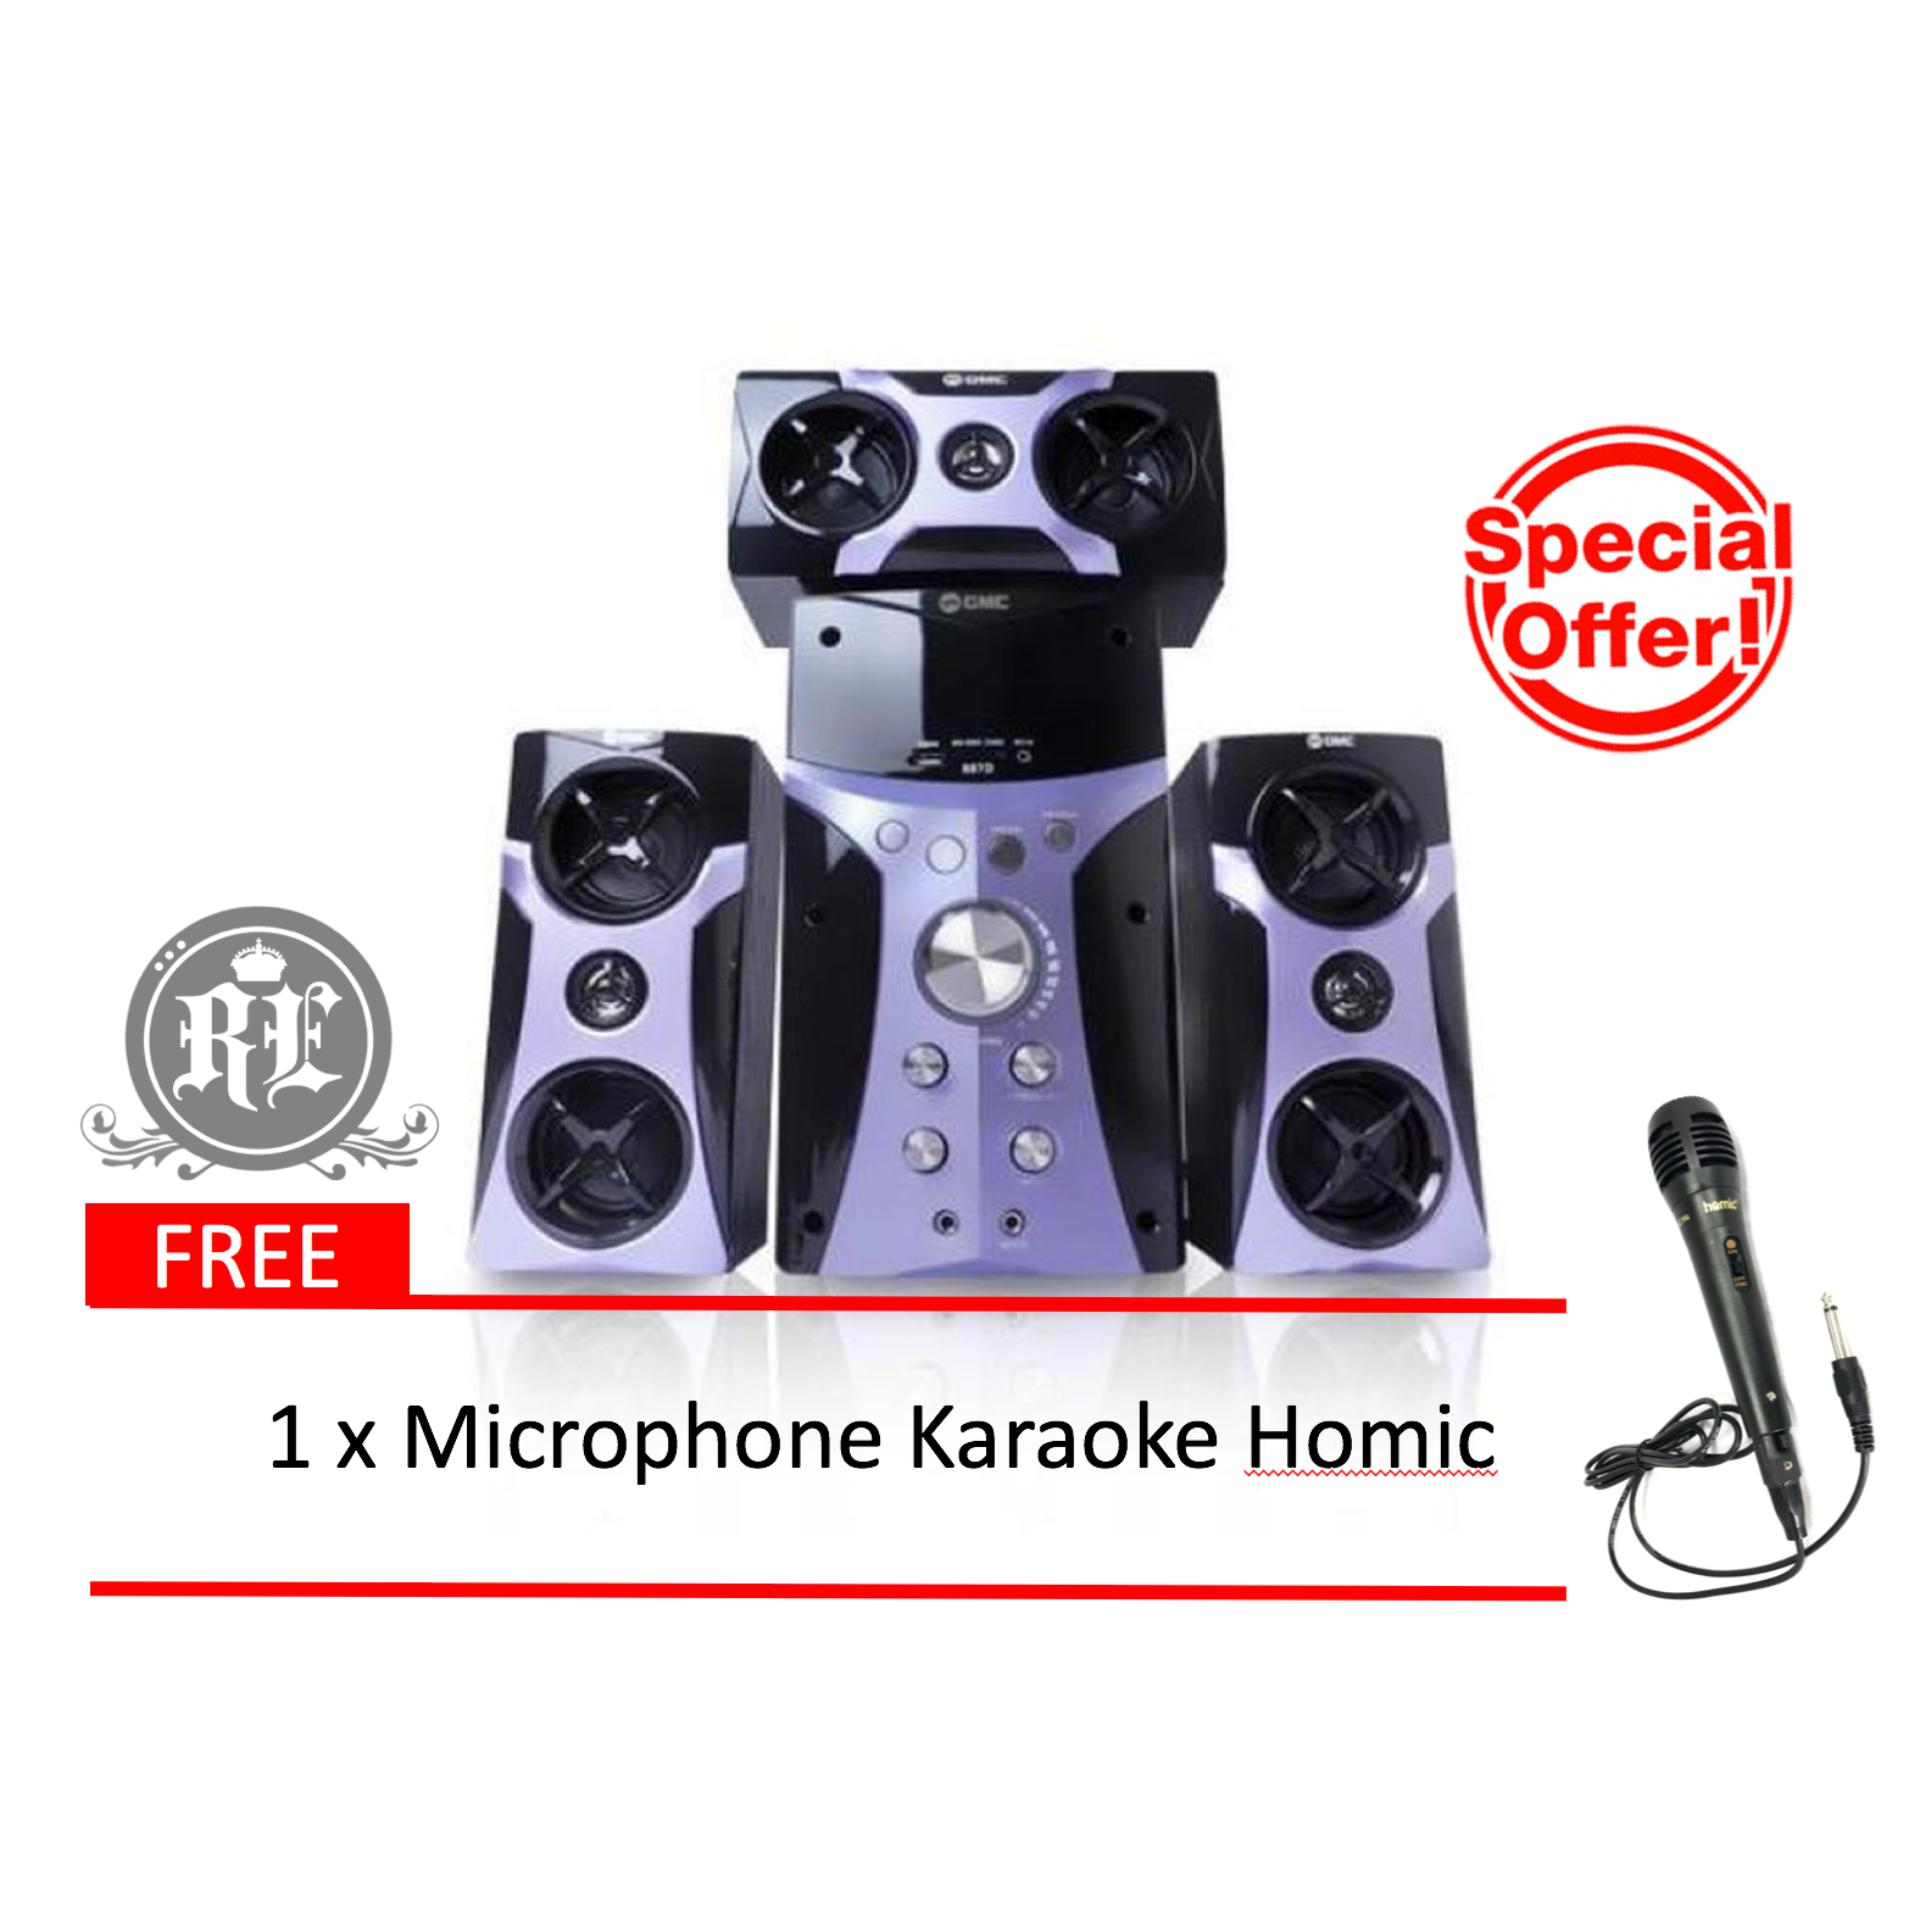 GMC 887D Multimedia Speaker / Speaker Aktif 3.1ch ( Bluetooth & Karaoke )